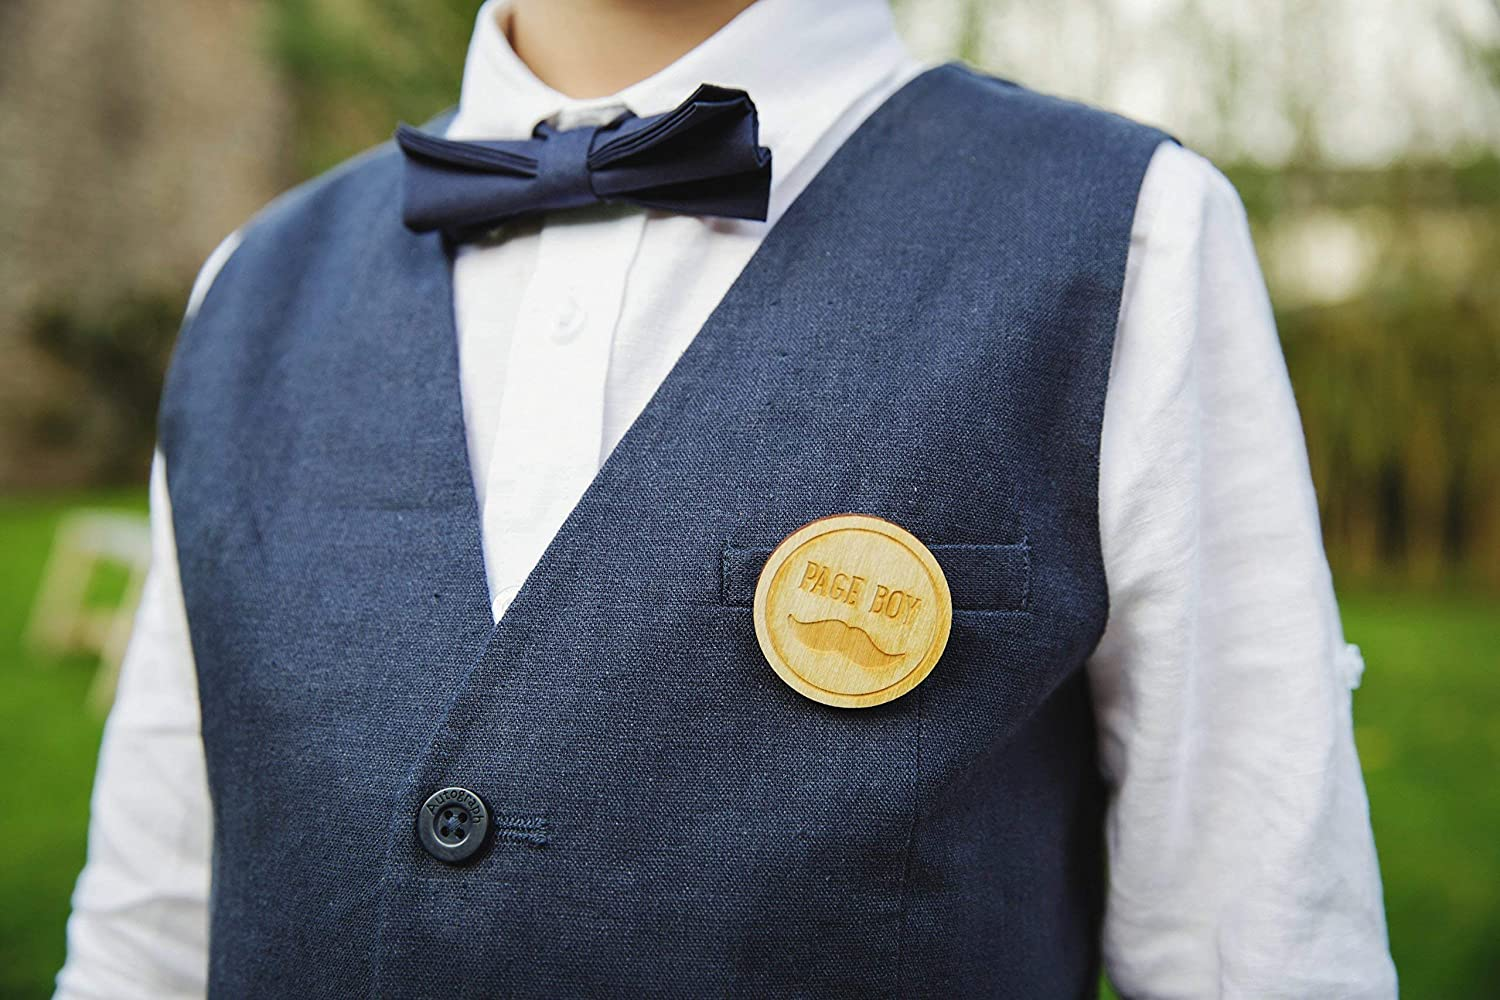 Page Boy Badge - Engraved wedding party badge, page boy gift, buttonhole, boutonniere, pin badge, pageboy, wedding badge